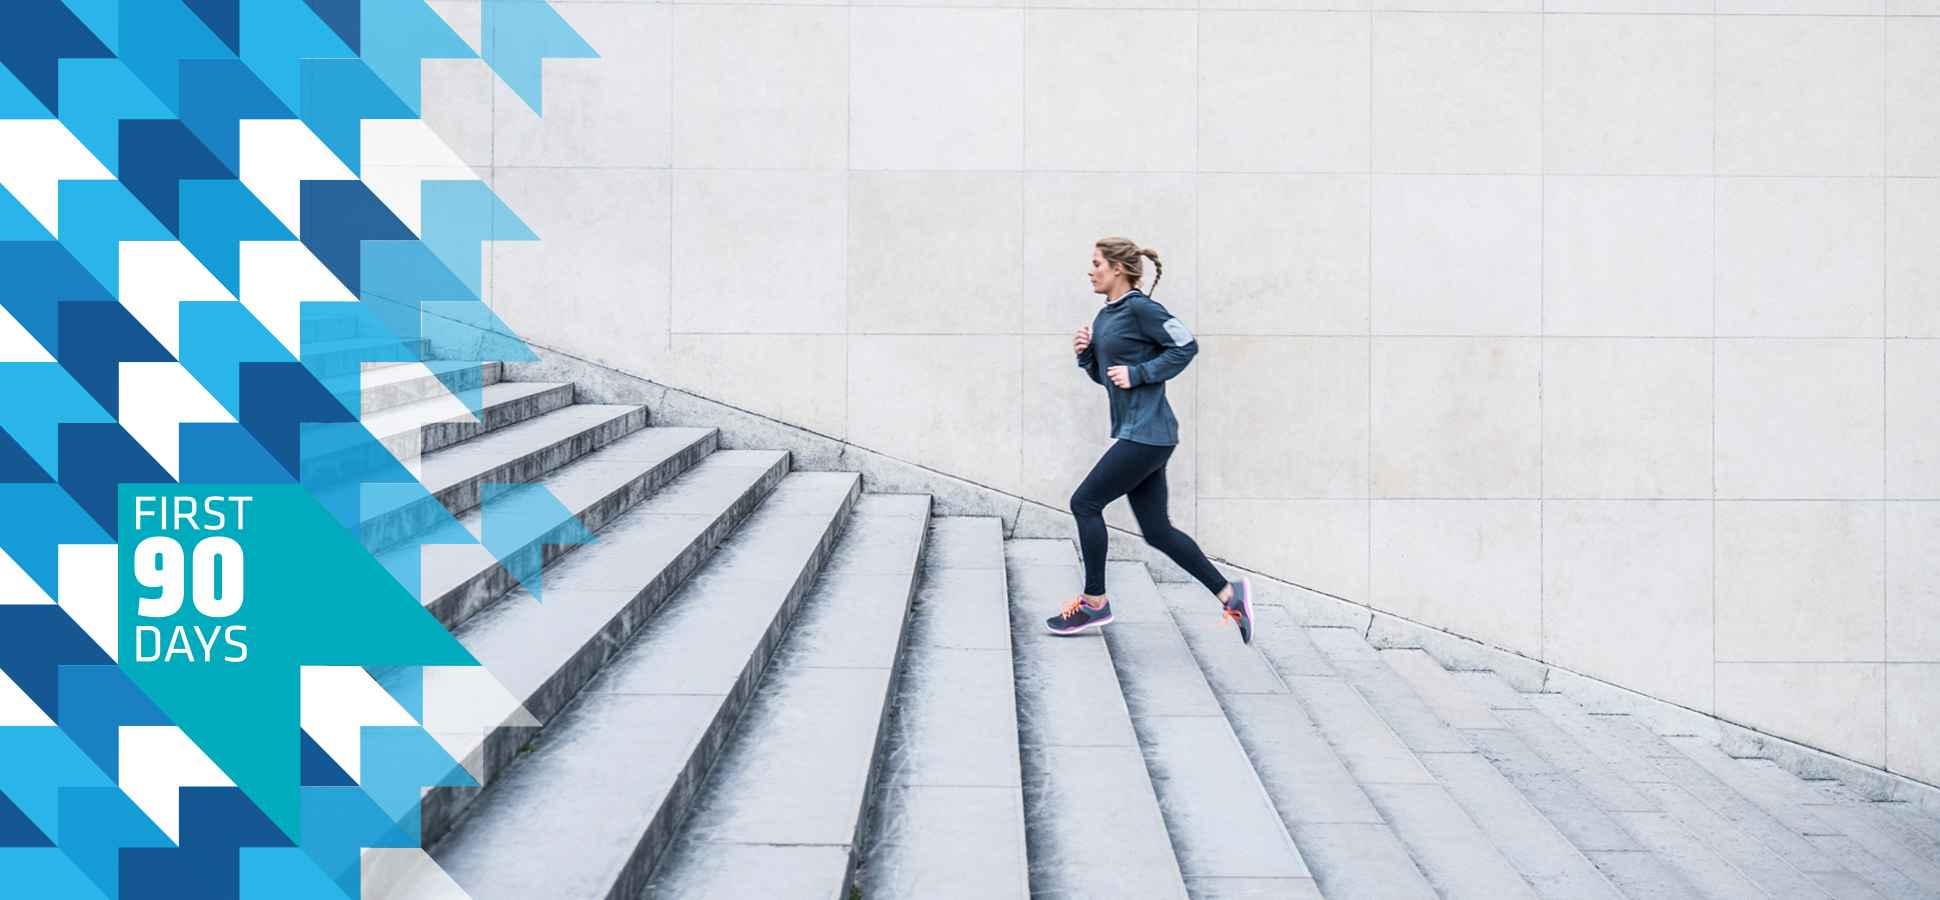 4 Simple Ways Successful People Build Awesome New Habits